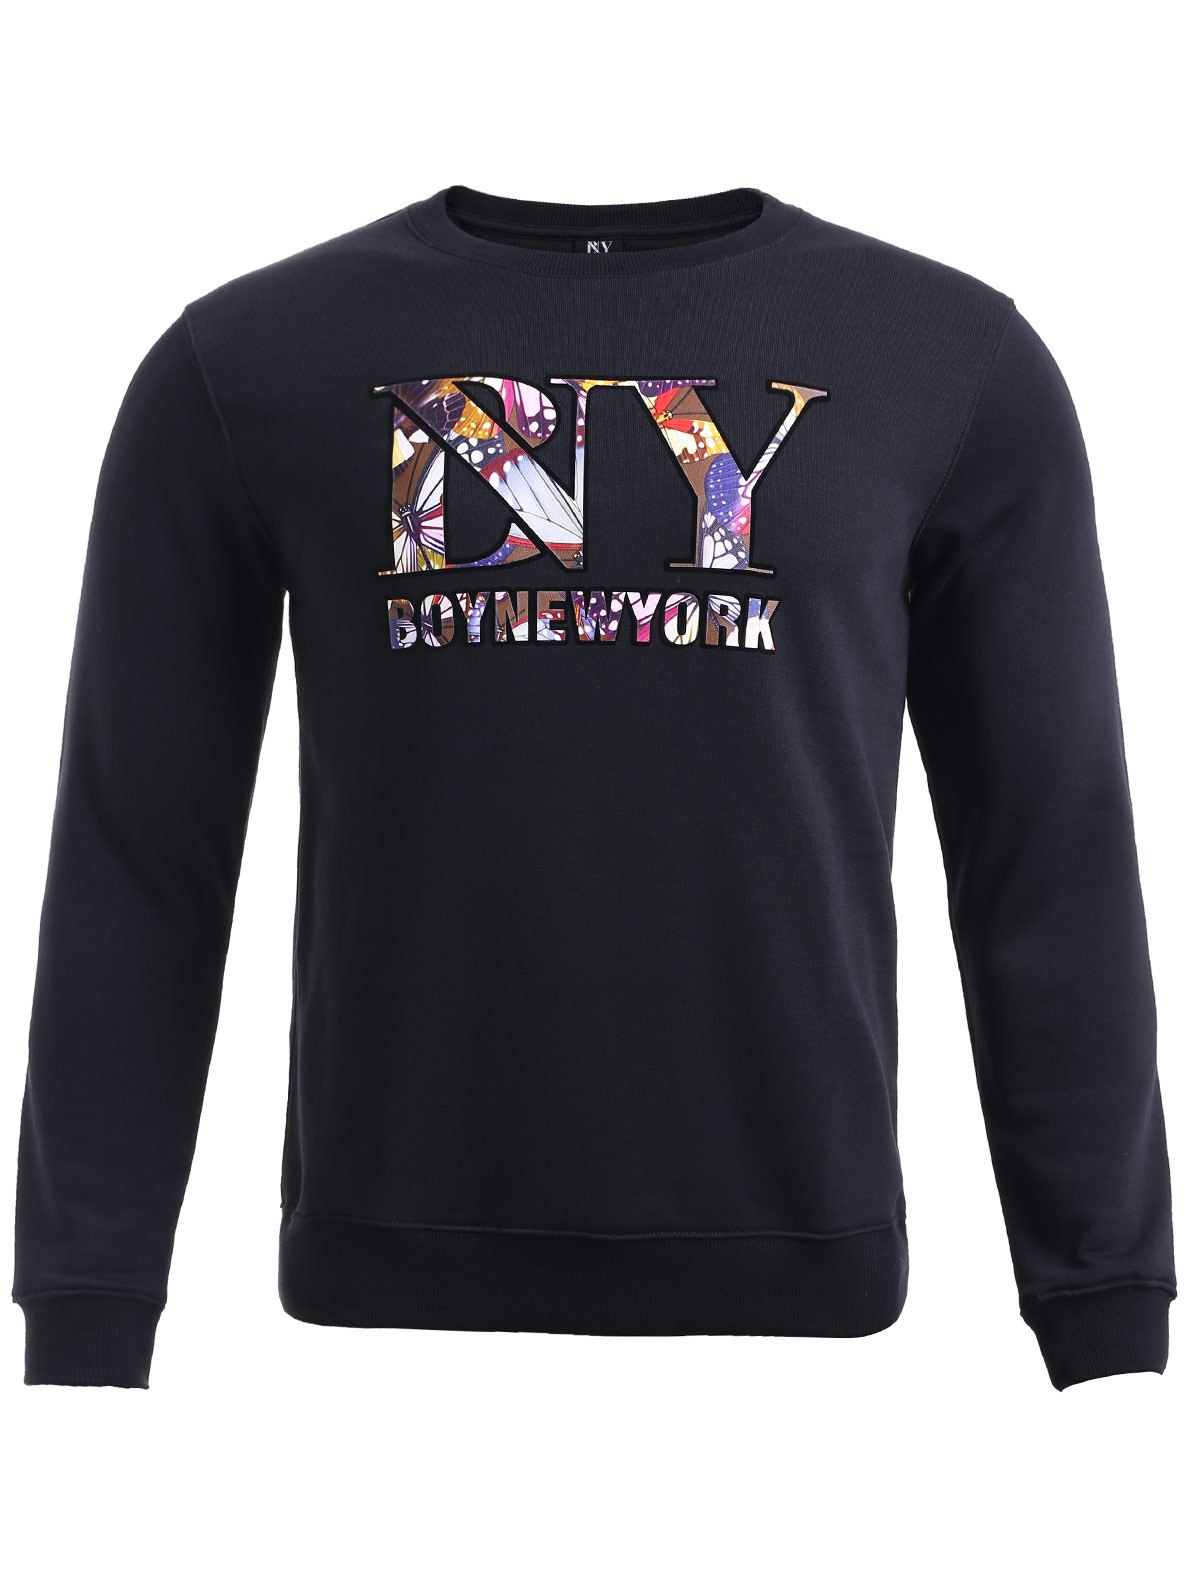 BoyNewYork Butterfly Printed Long Sleeves Sweatshirt